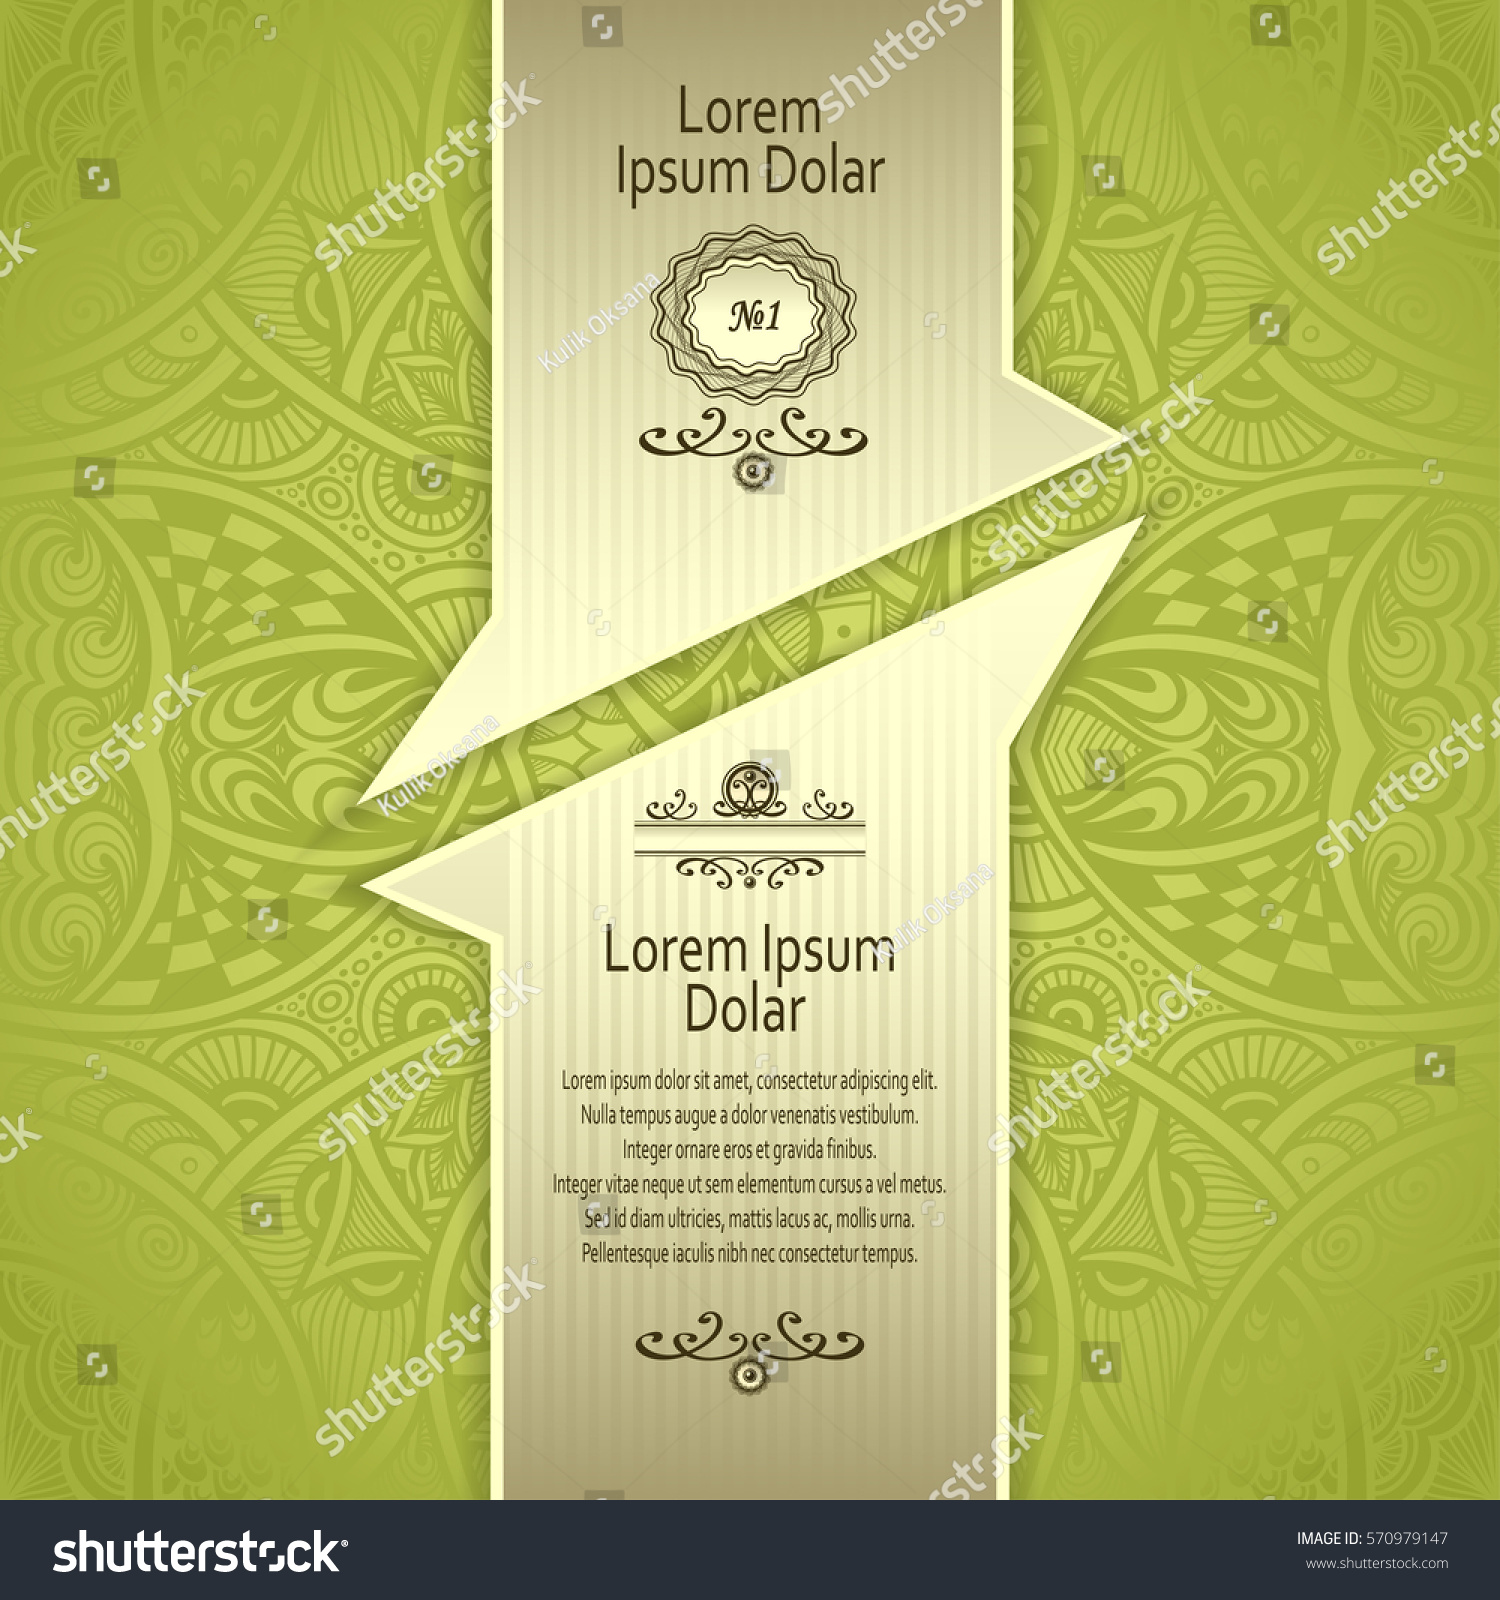 Template zen tangle abstract pattern package stock vector hd template with zen tangle abstract pattern for package or label in green and gold for advertising stopboris Images